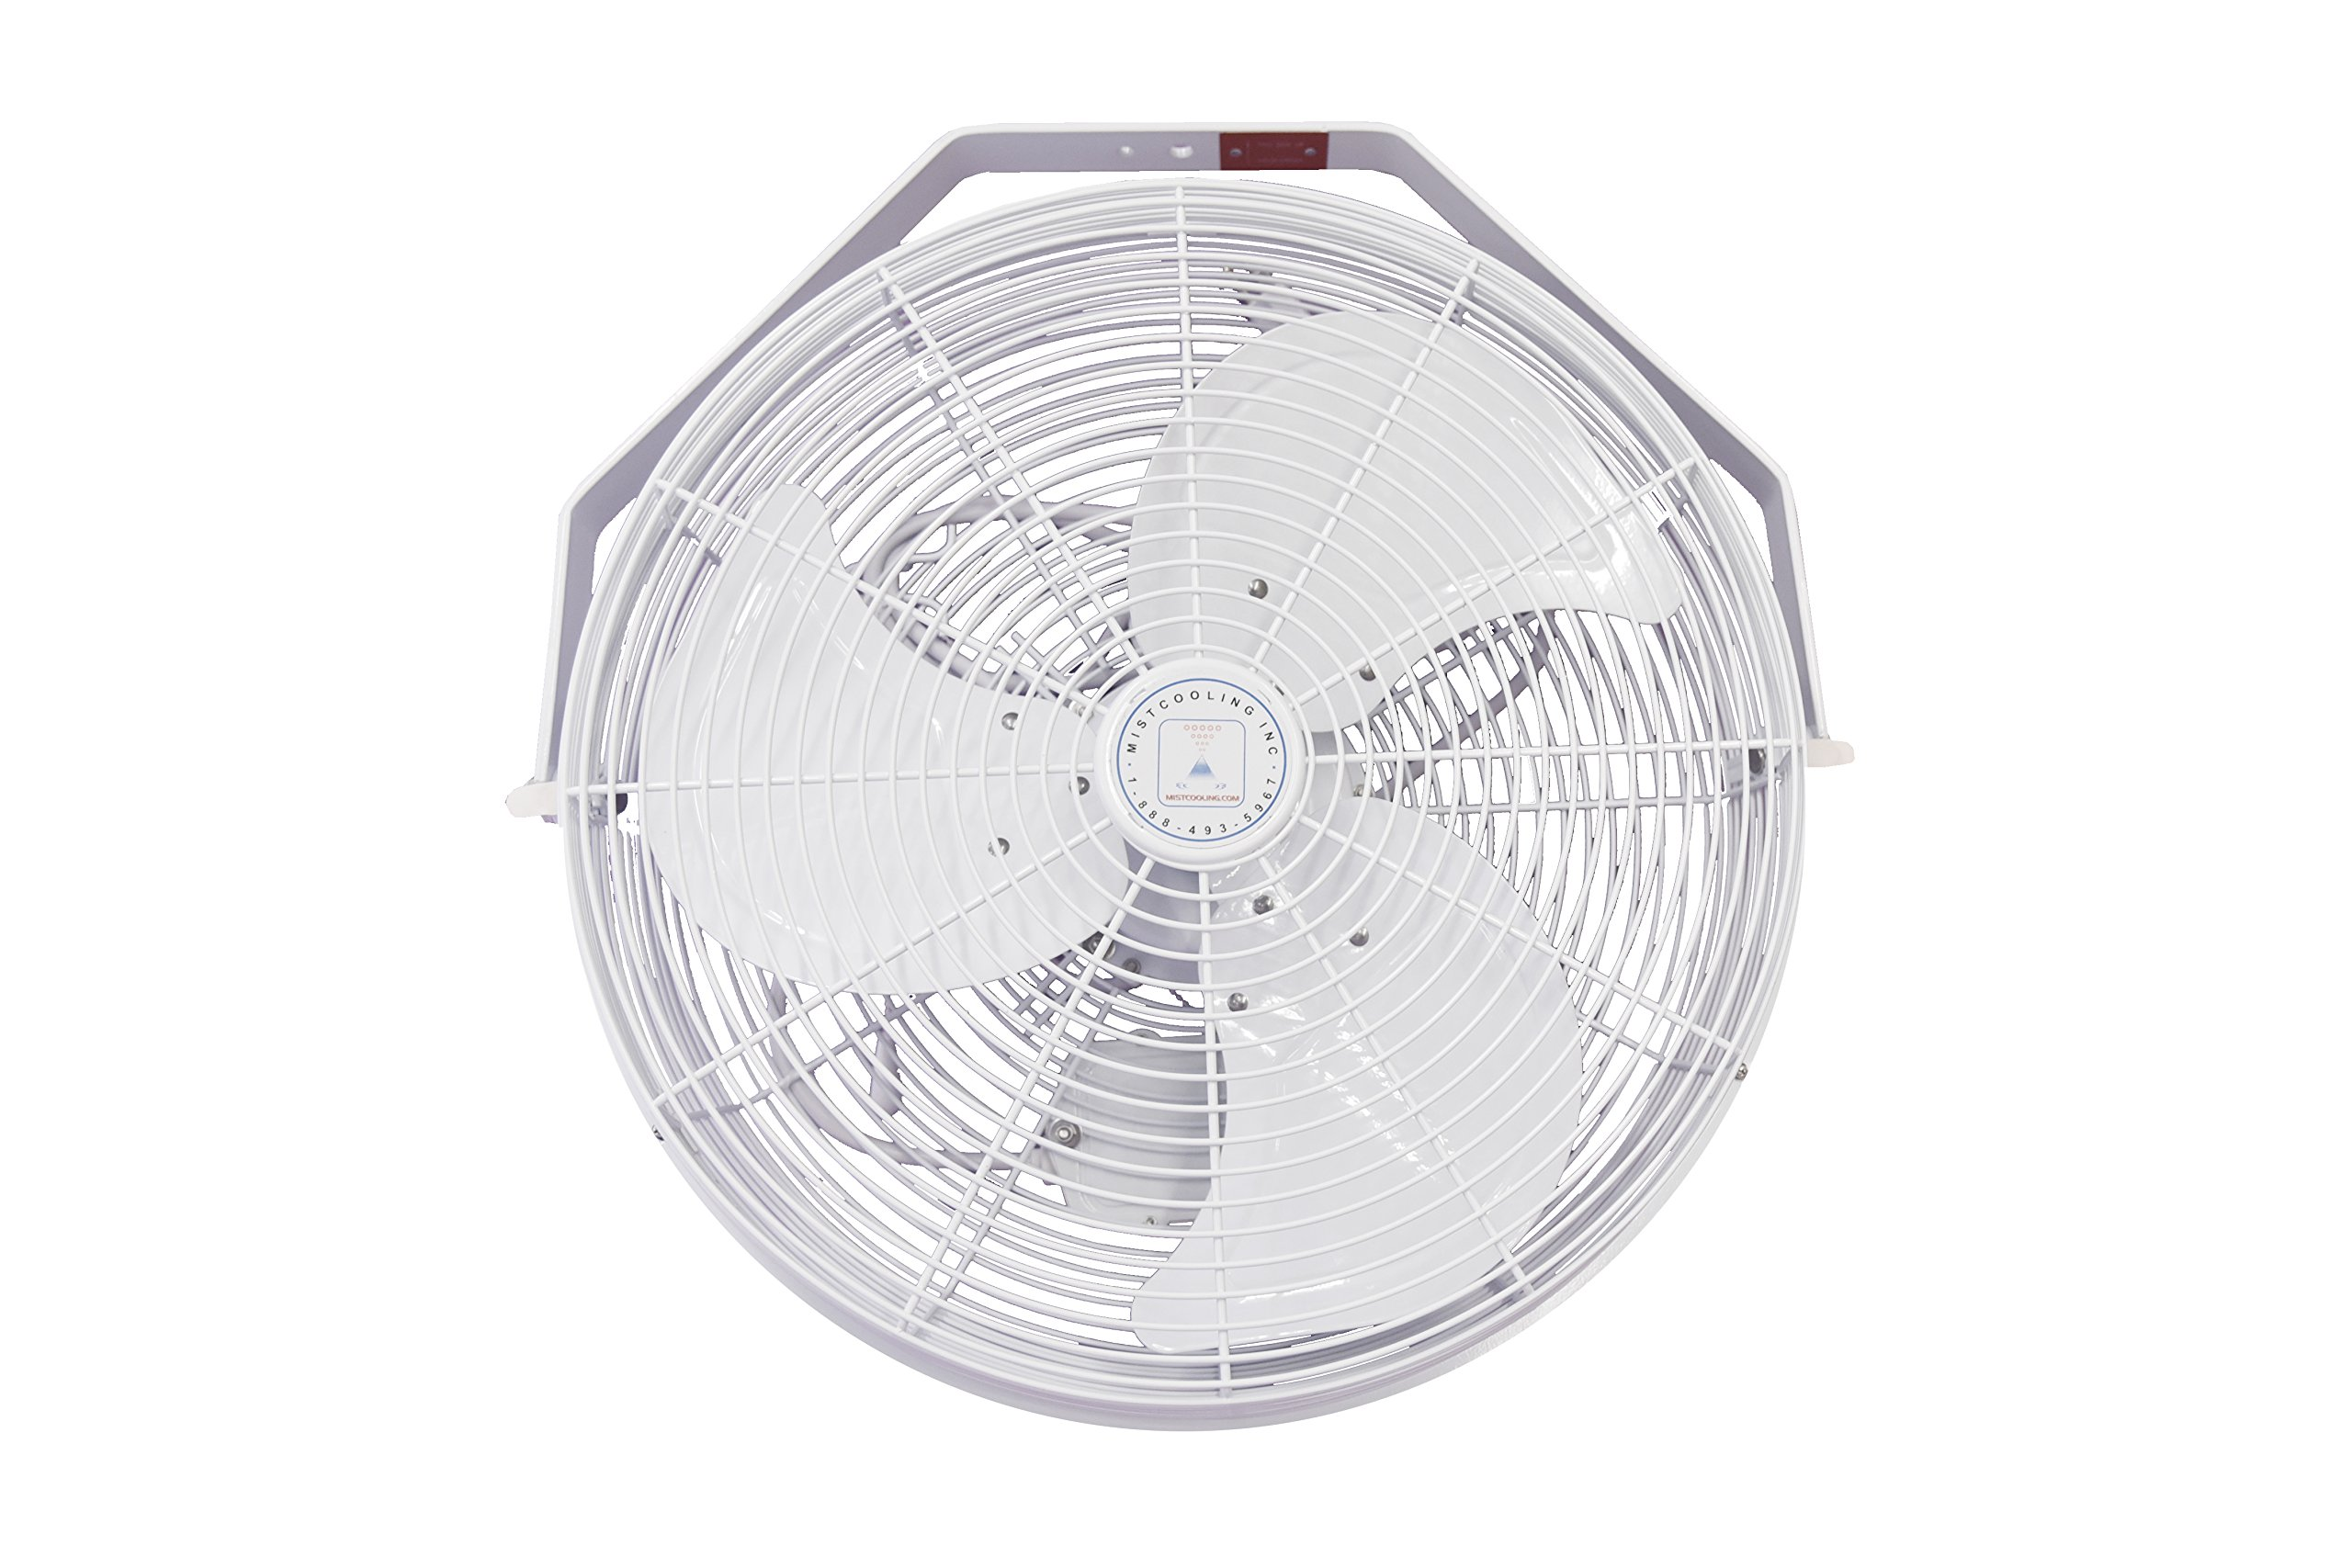 J and D POW18 - 18 Inch White fan for Indoor & Outdoor Wall; Ceiling Or Pole Mount Fan